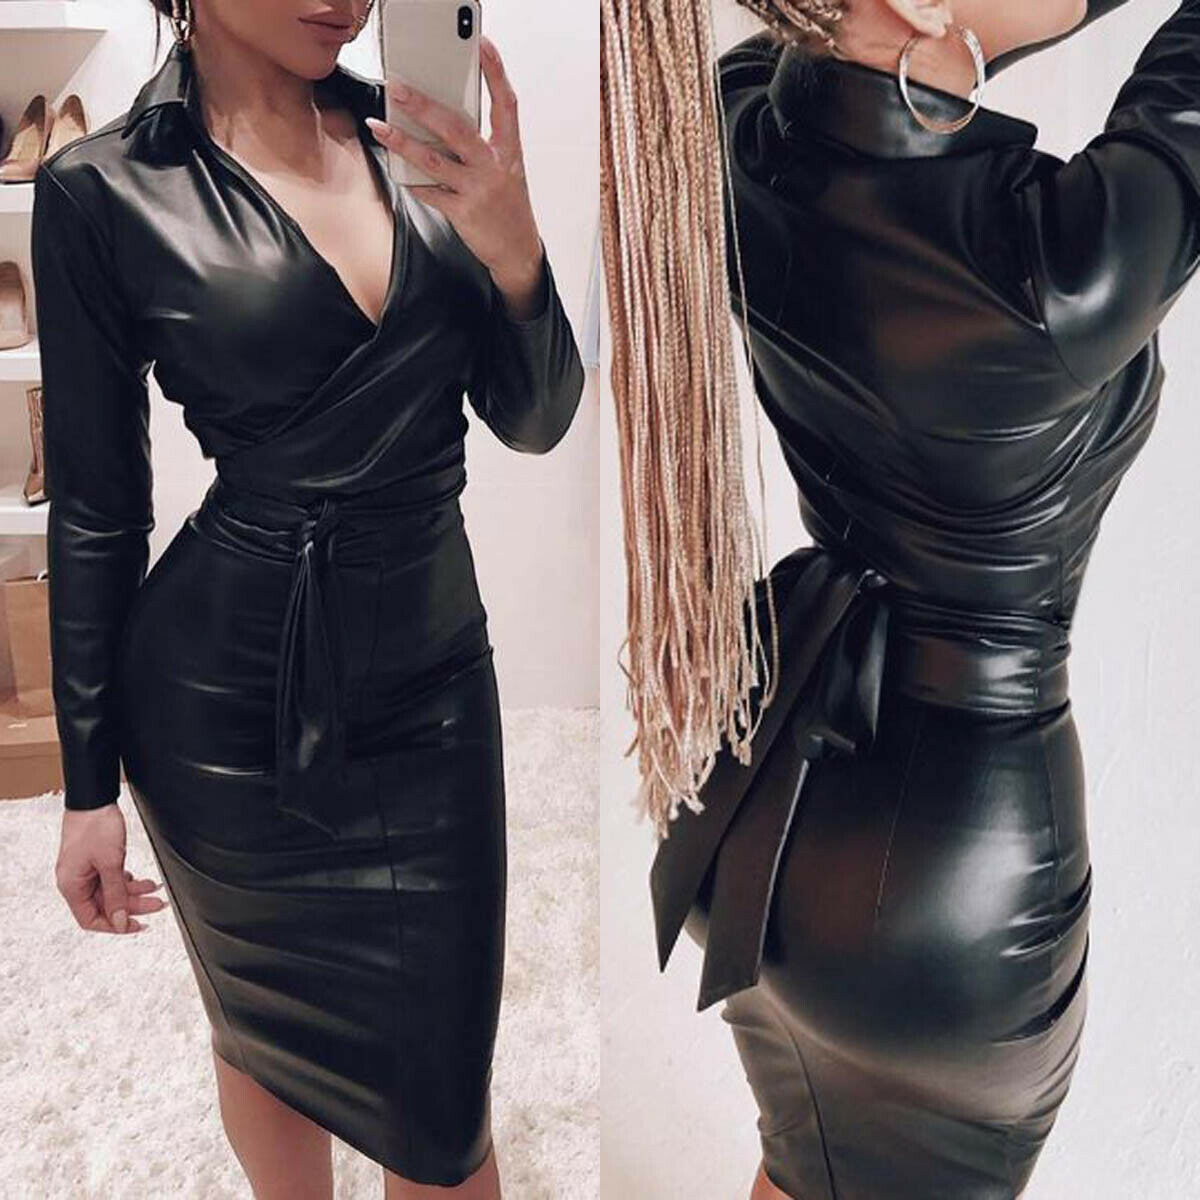 Women <font><b>Sexy</b></font> PU Leather Bodycon V-Neck <font><b>Dress</b></font> Deep Long Sleeve Empire <font><b>Black</b></font> Skinny Bodycon Midi <font><b>Dress</b></font> Night Club Sex Wear image